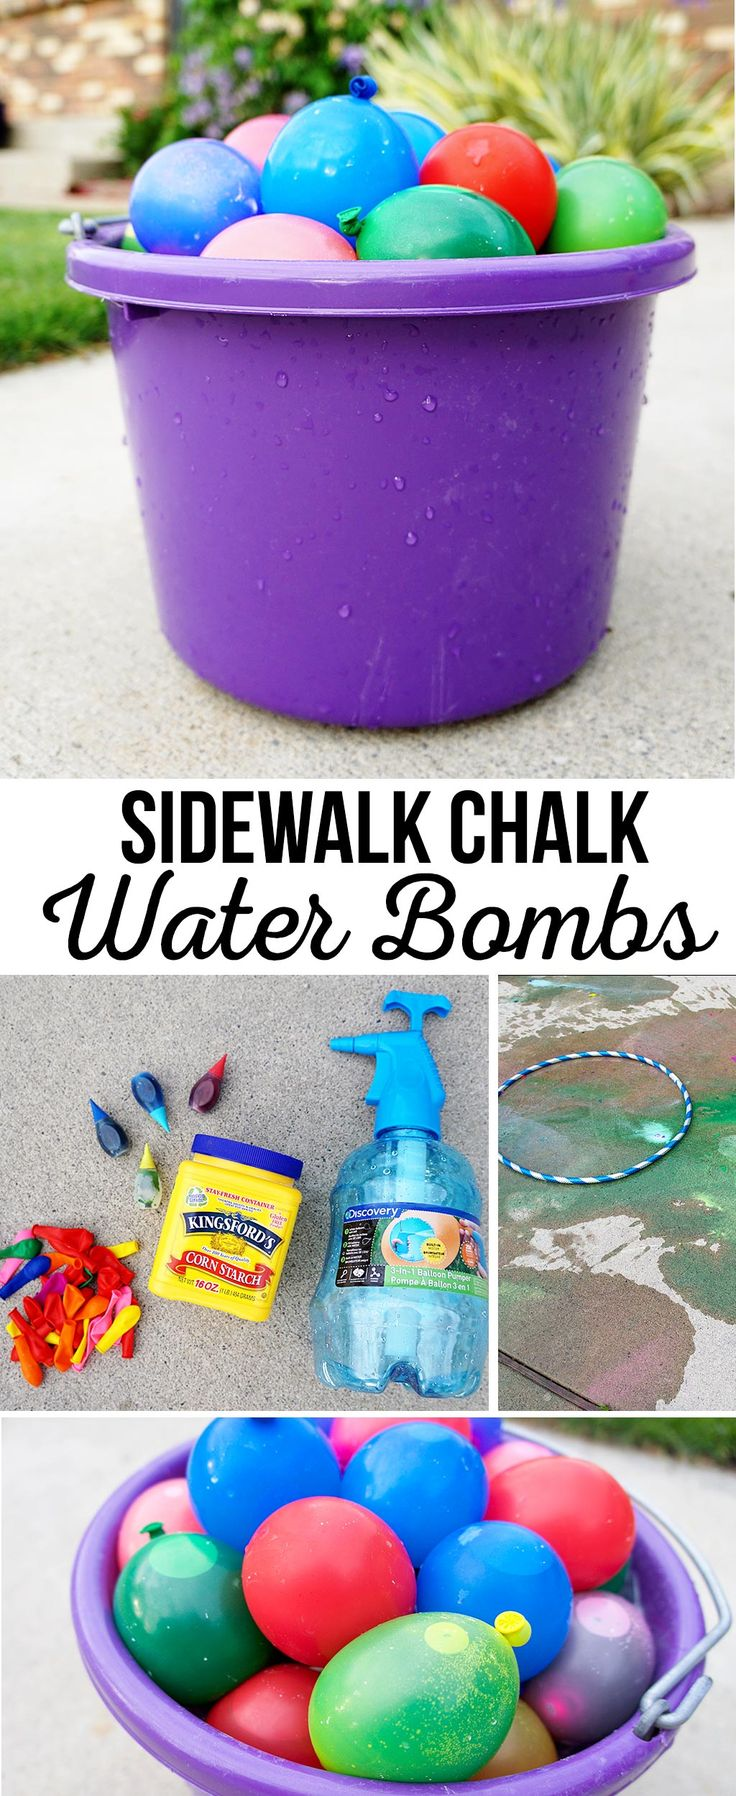 DIY Sidewalk Chalk Water Bombs | Summer Kids Activities